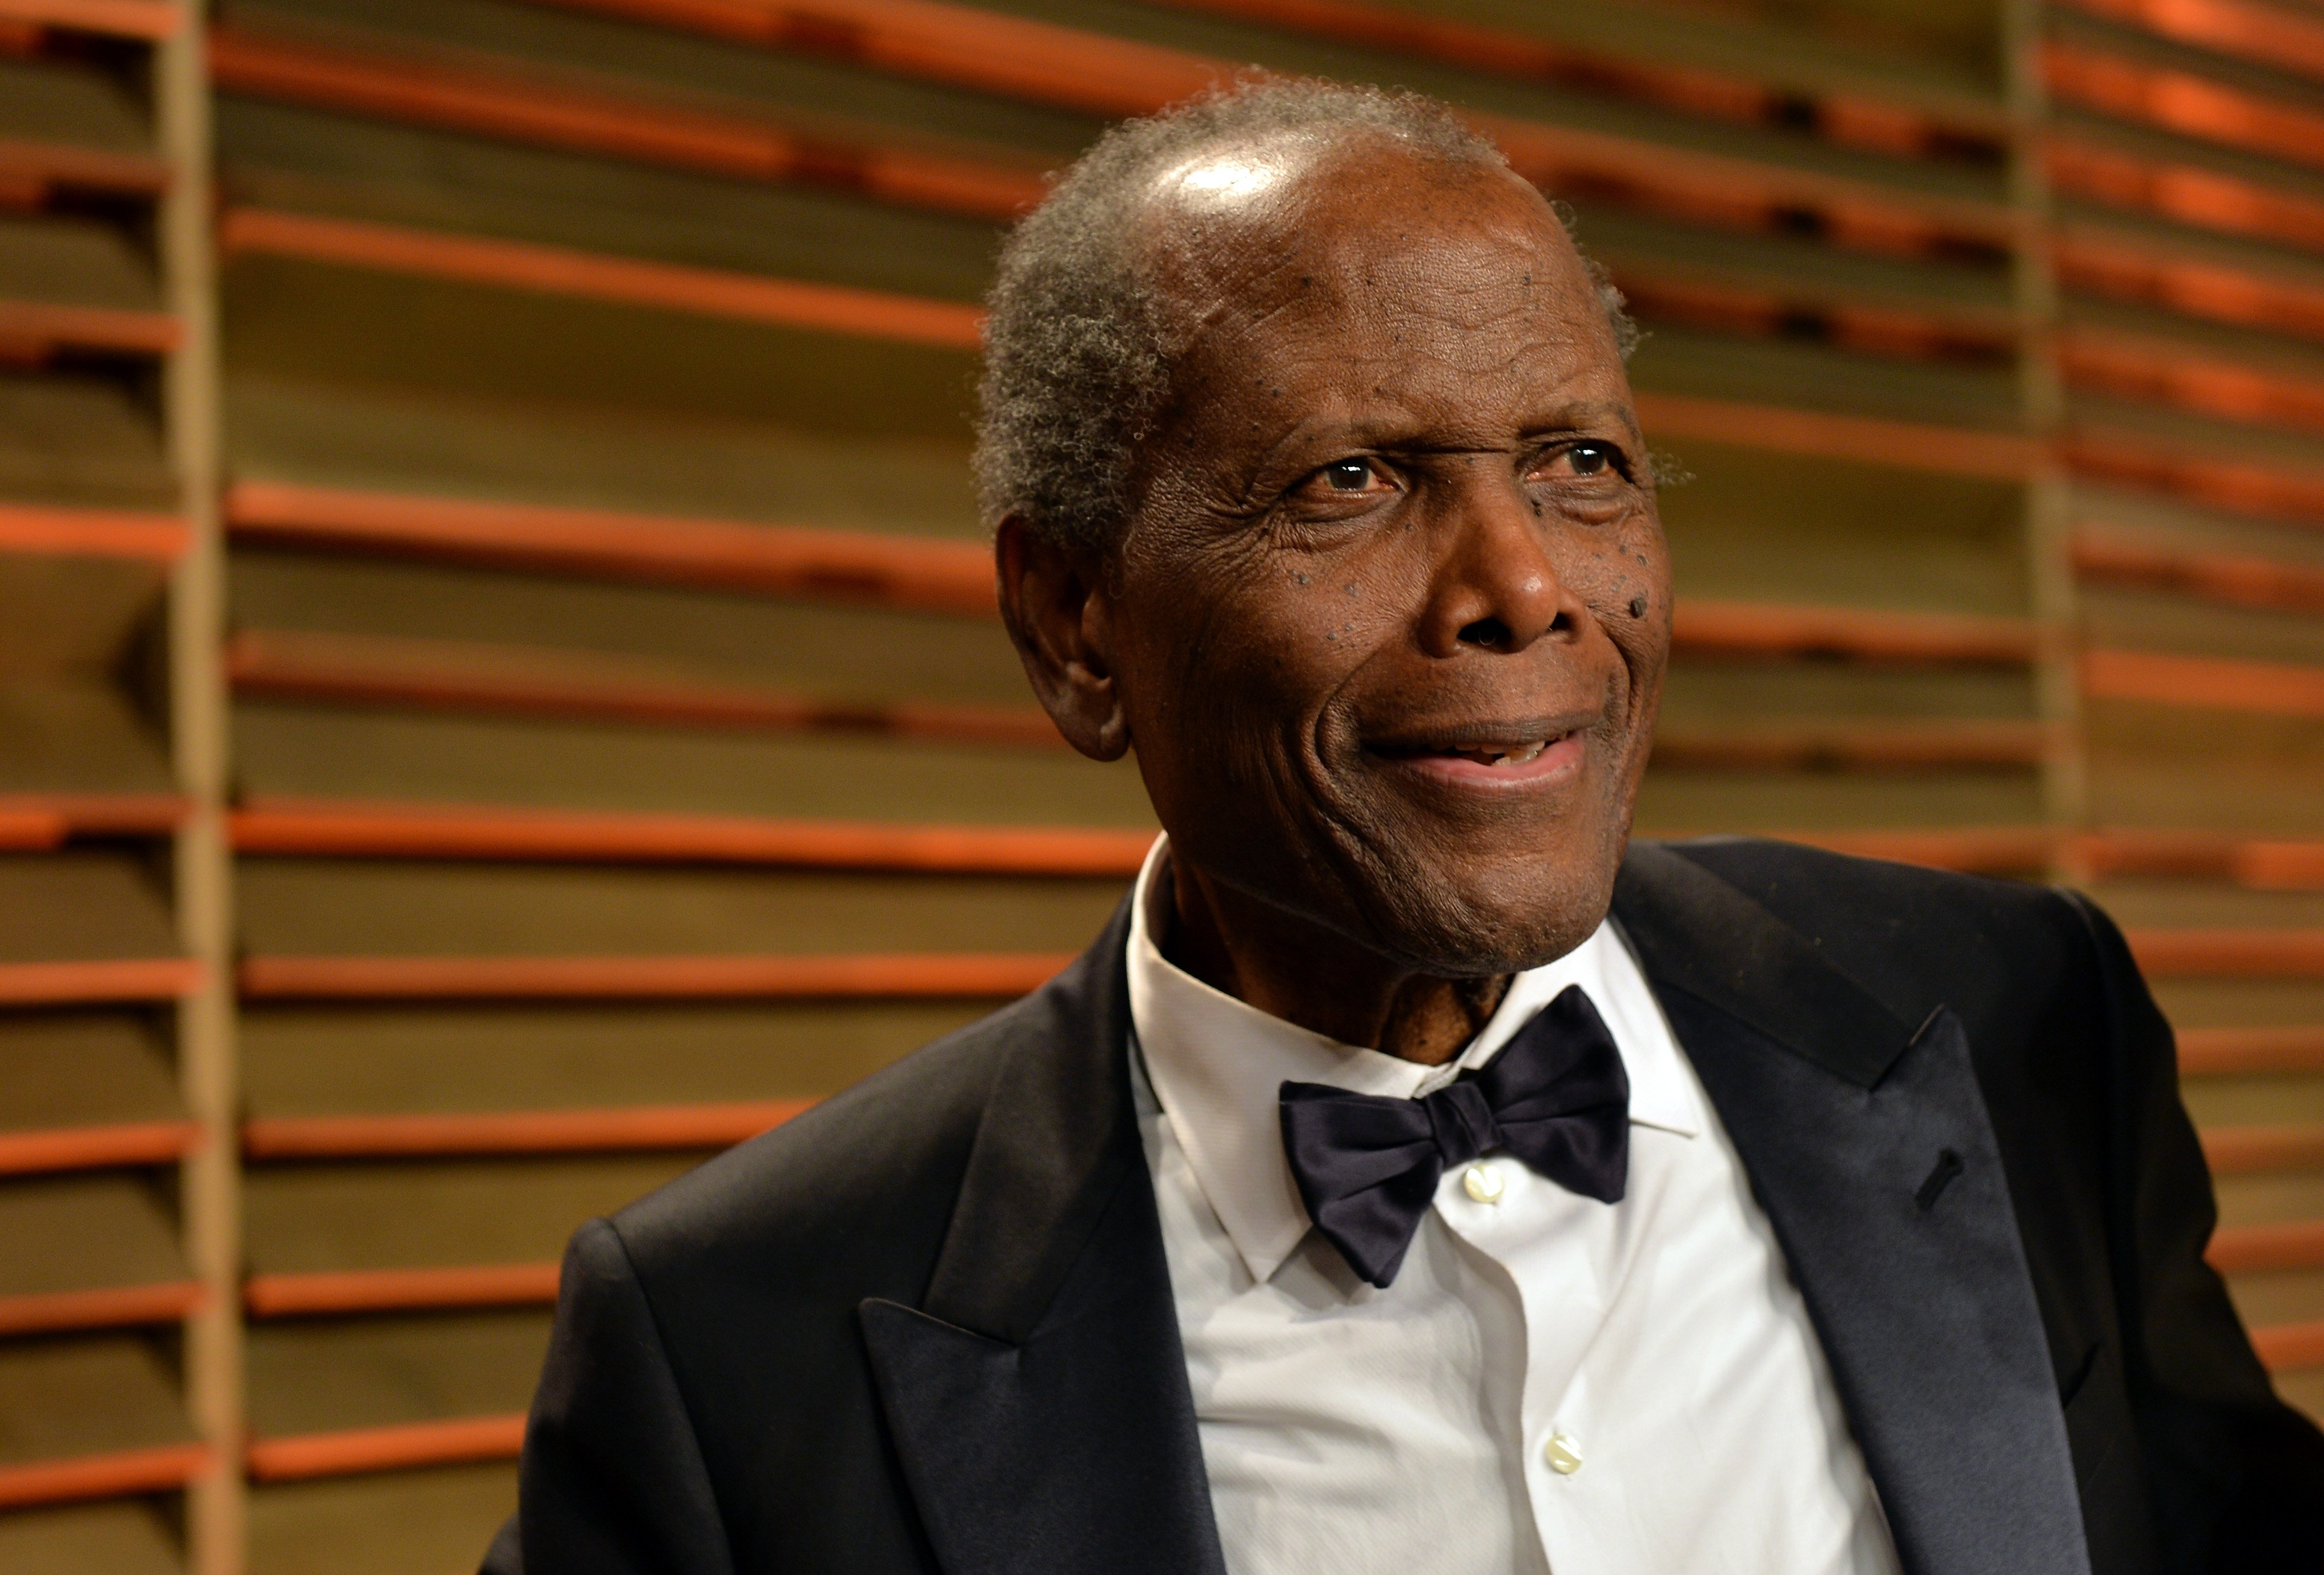 Sidney Poitier attends the 2014 Vanity Fair Oscar Party on March 2, 2014. | Photo: GettyImages